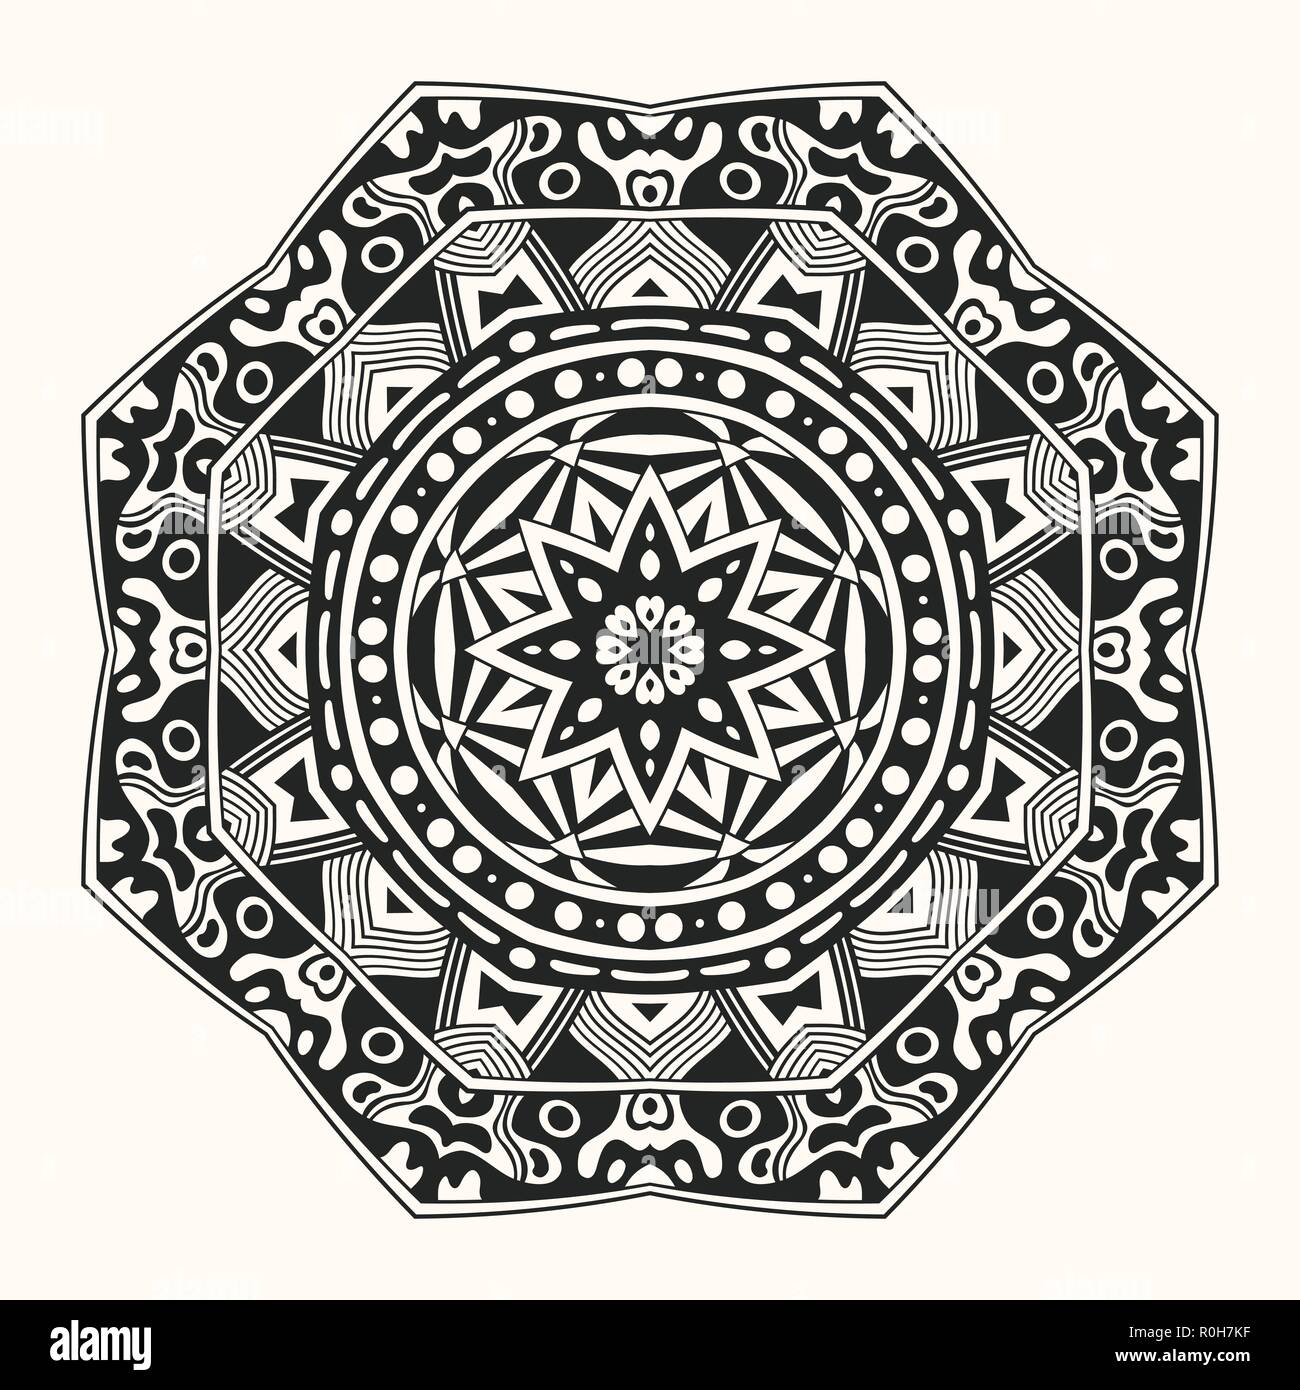 Vector Zentangle Template Creative Circular Ornament Round Symmetrical Pattern Decorative Mandala Floral Decoration Arabic Indian